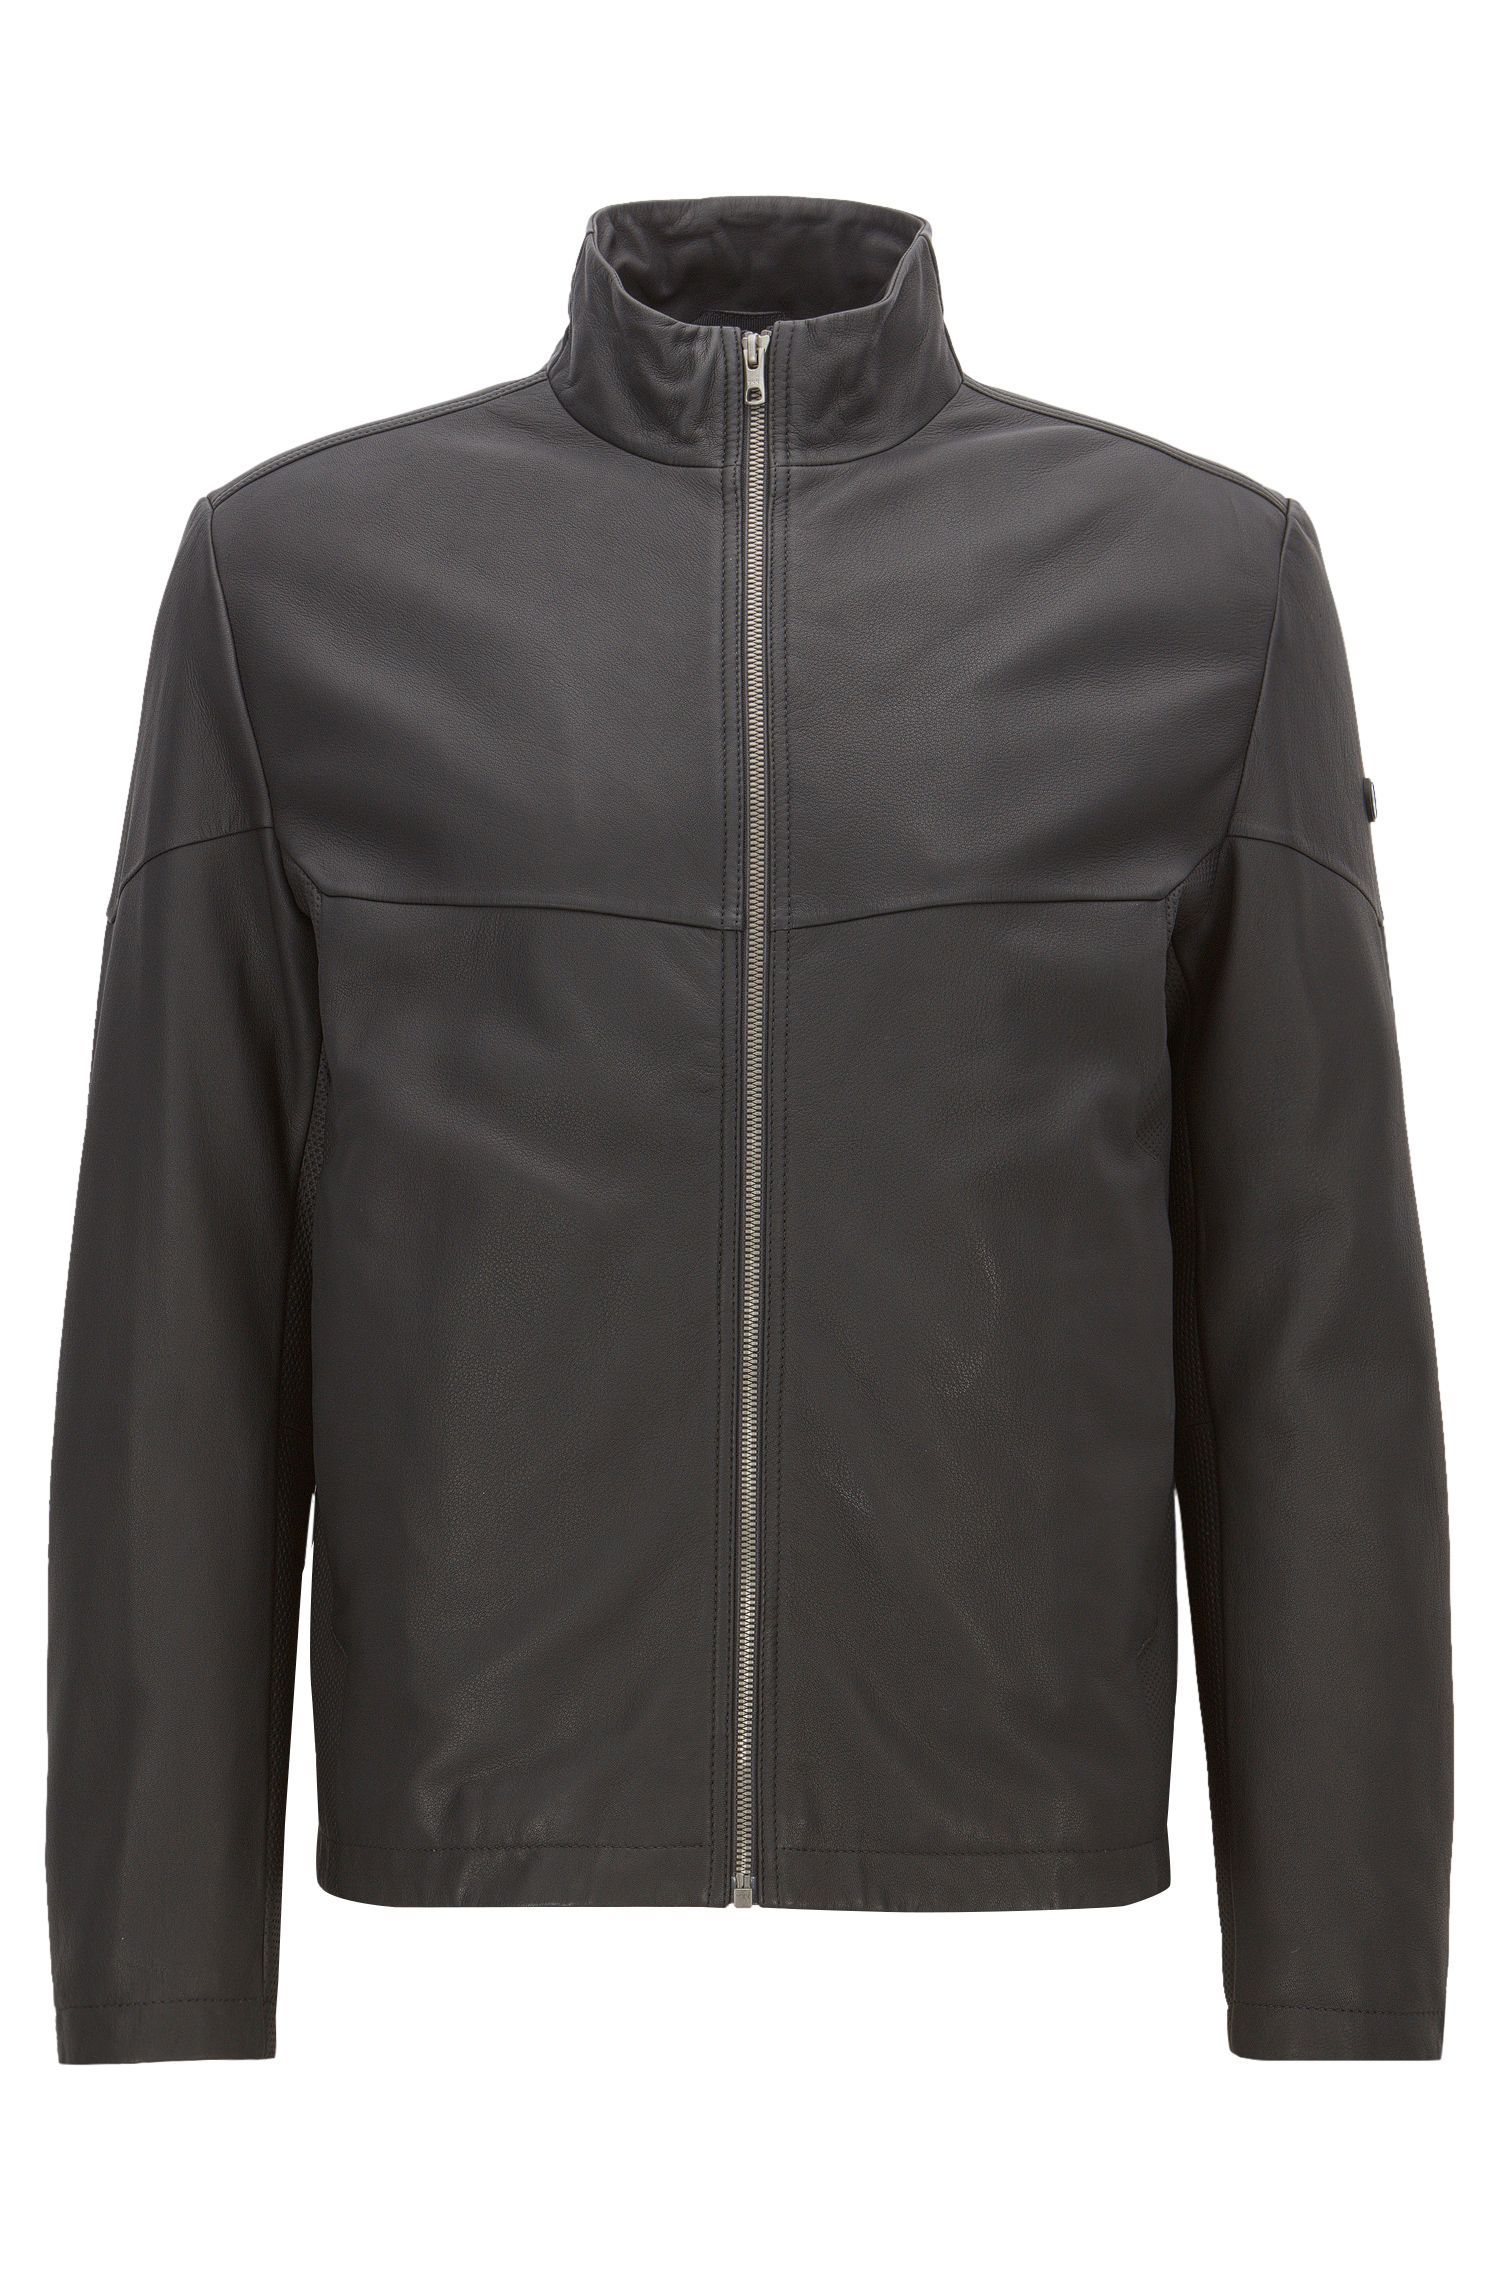 Blouson en cuir Regular Fit, avec garnissage PrimaLoft®